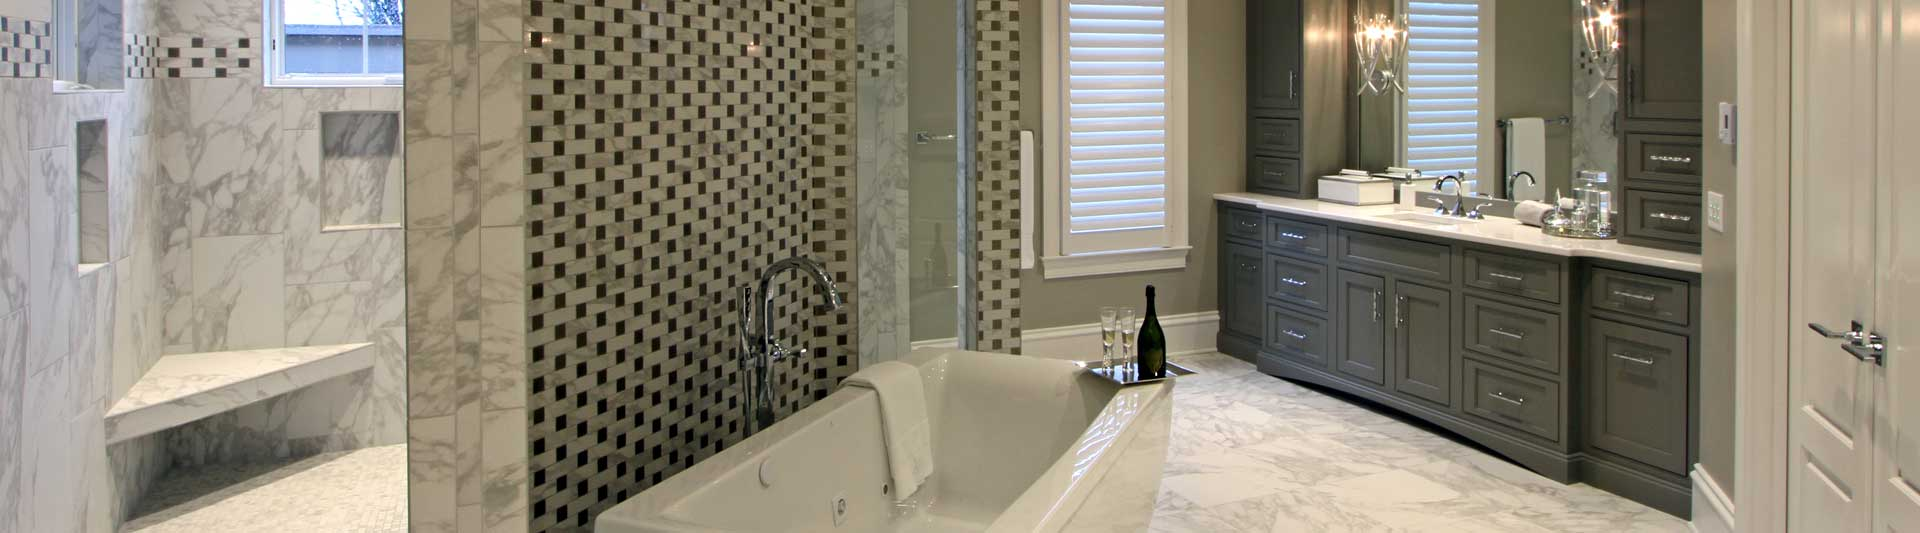 Bathroom Remodeling Cincinnati Kitchens - Bathroom remodeling contractors cincinnati ohio